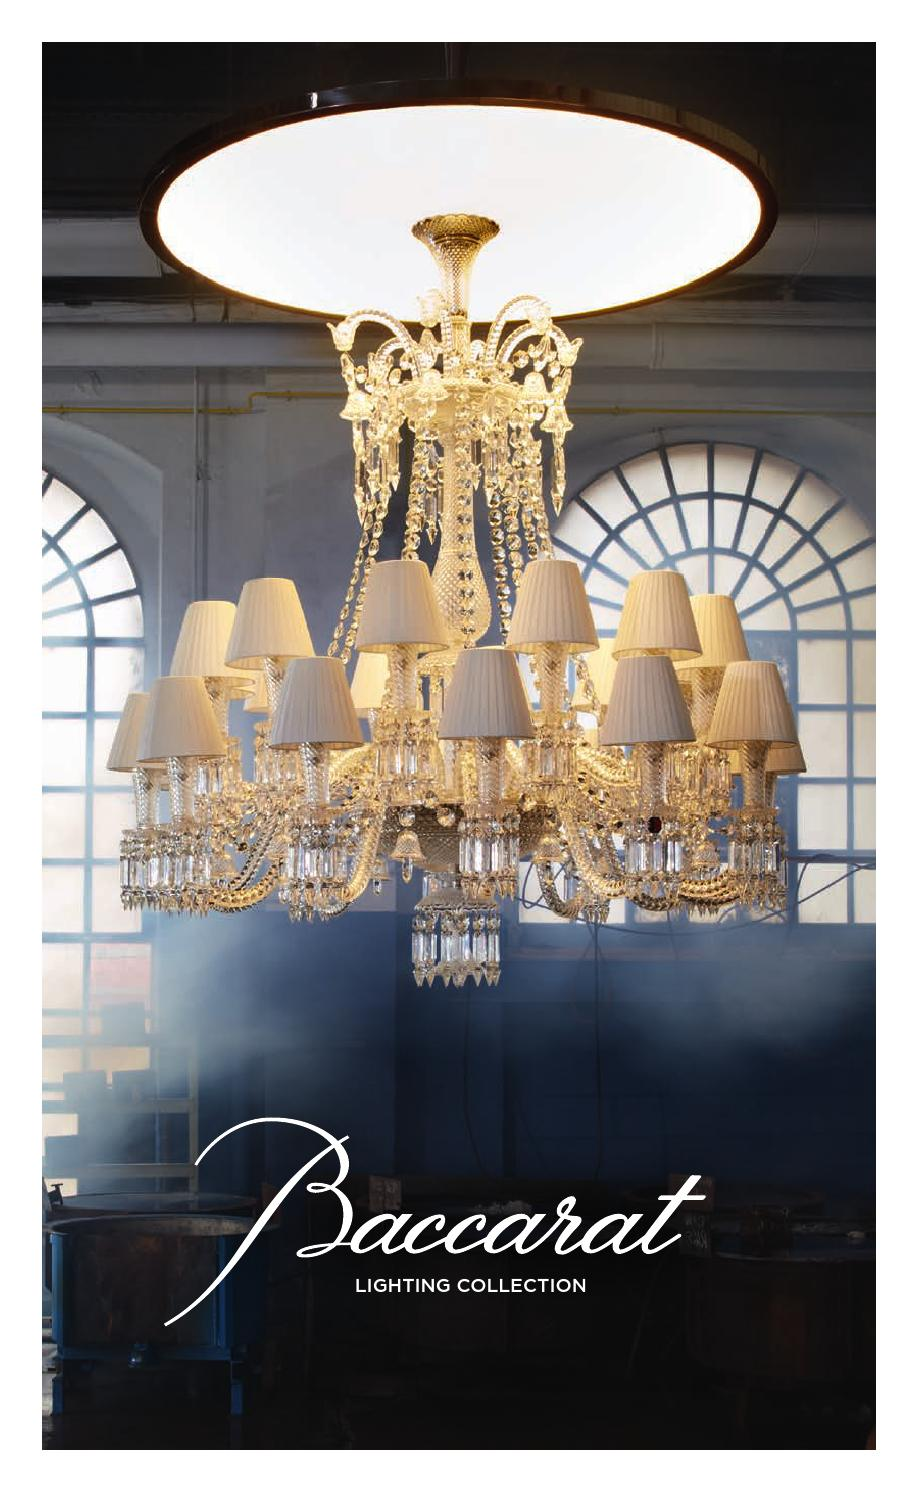 Baccarat Lighting Collection 2014 By Baccarat Issuu